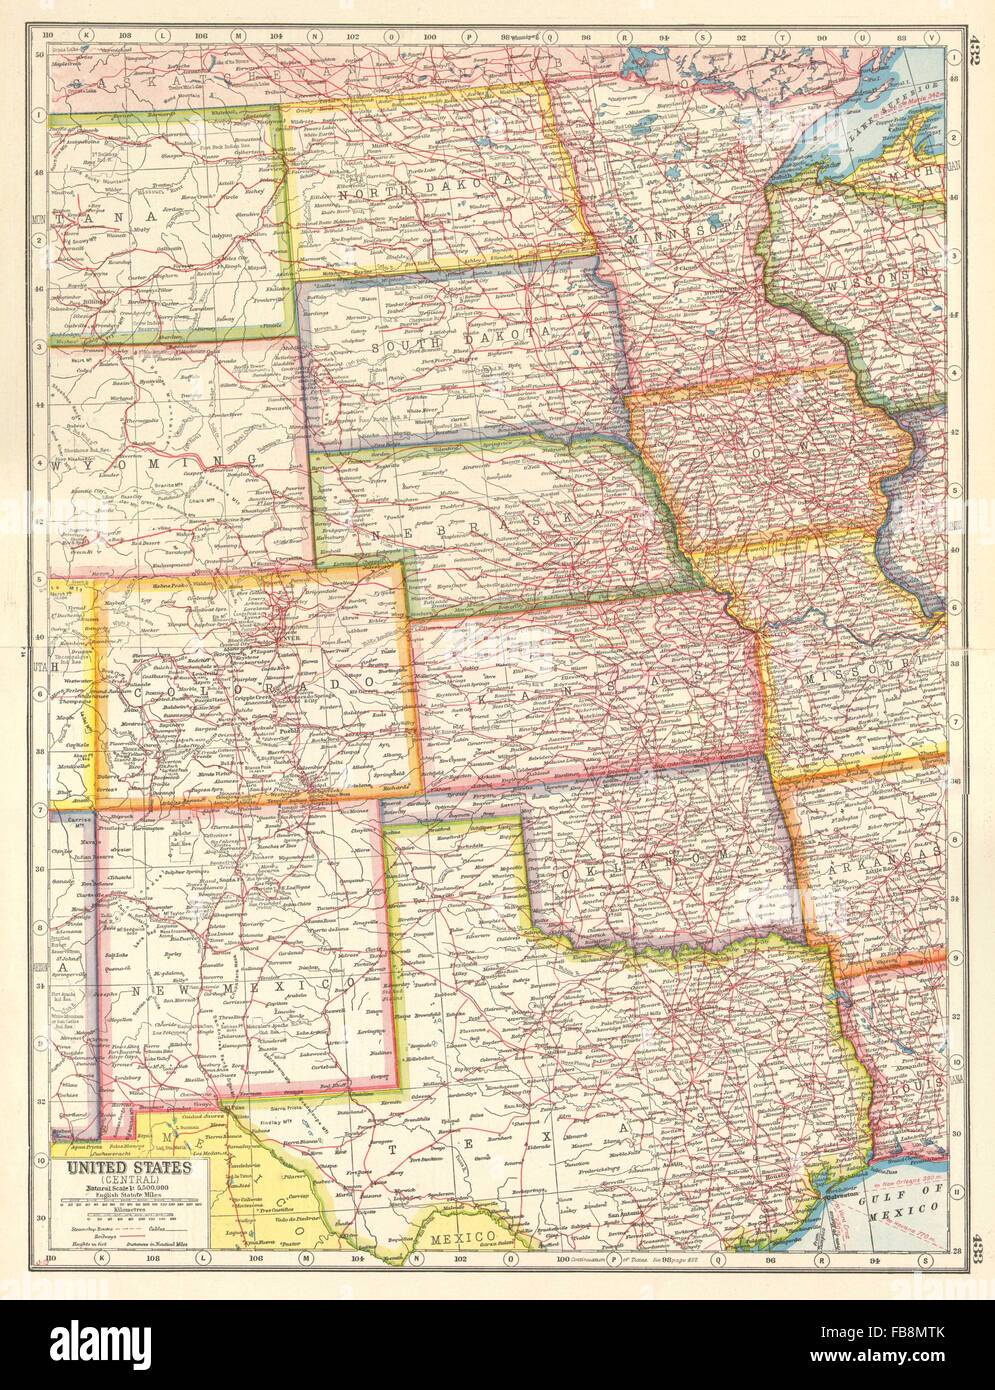 Geographical Map Of Minnesota And Minnesota Geographical Maps